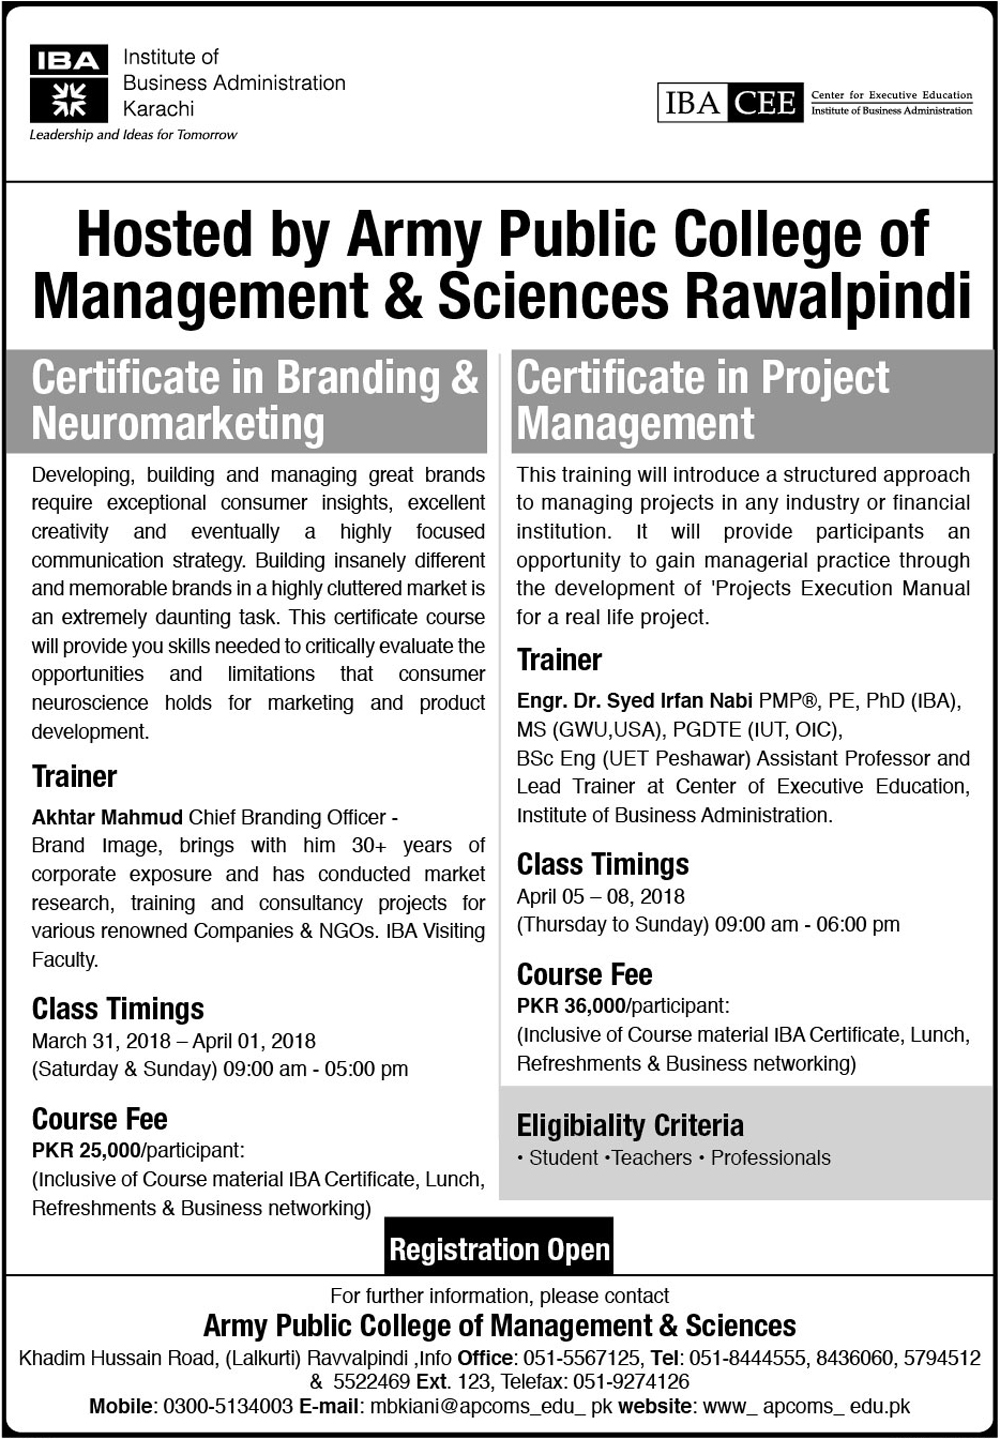 IBA CEE - APCMS Certificate Courses